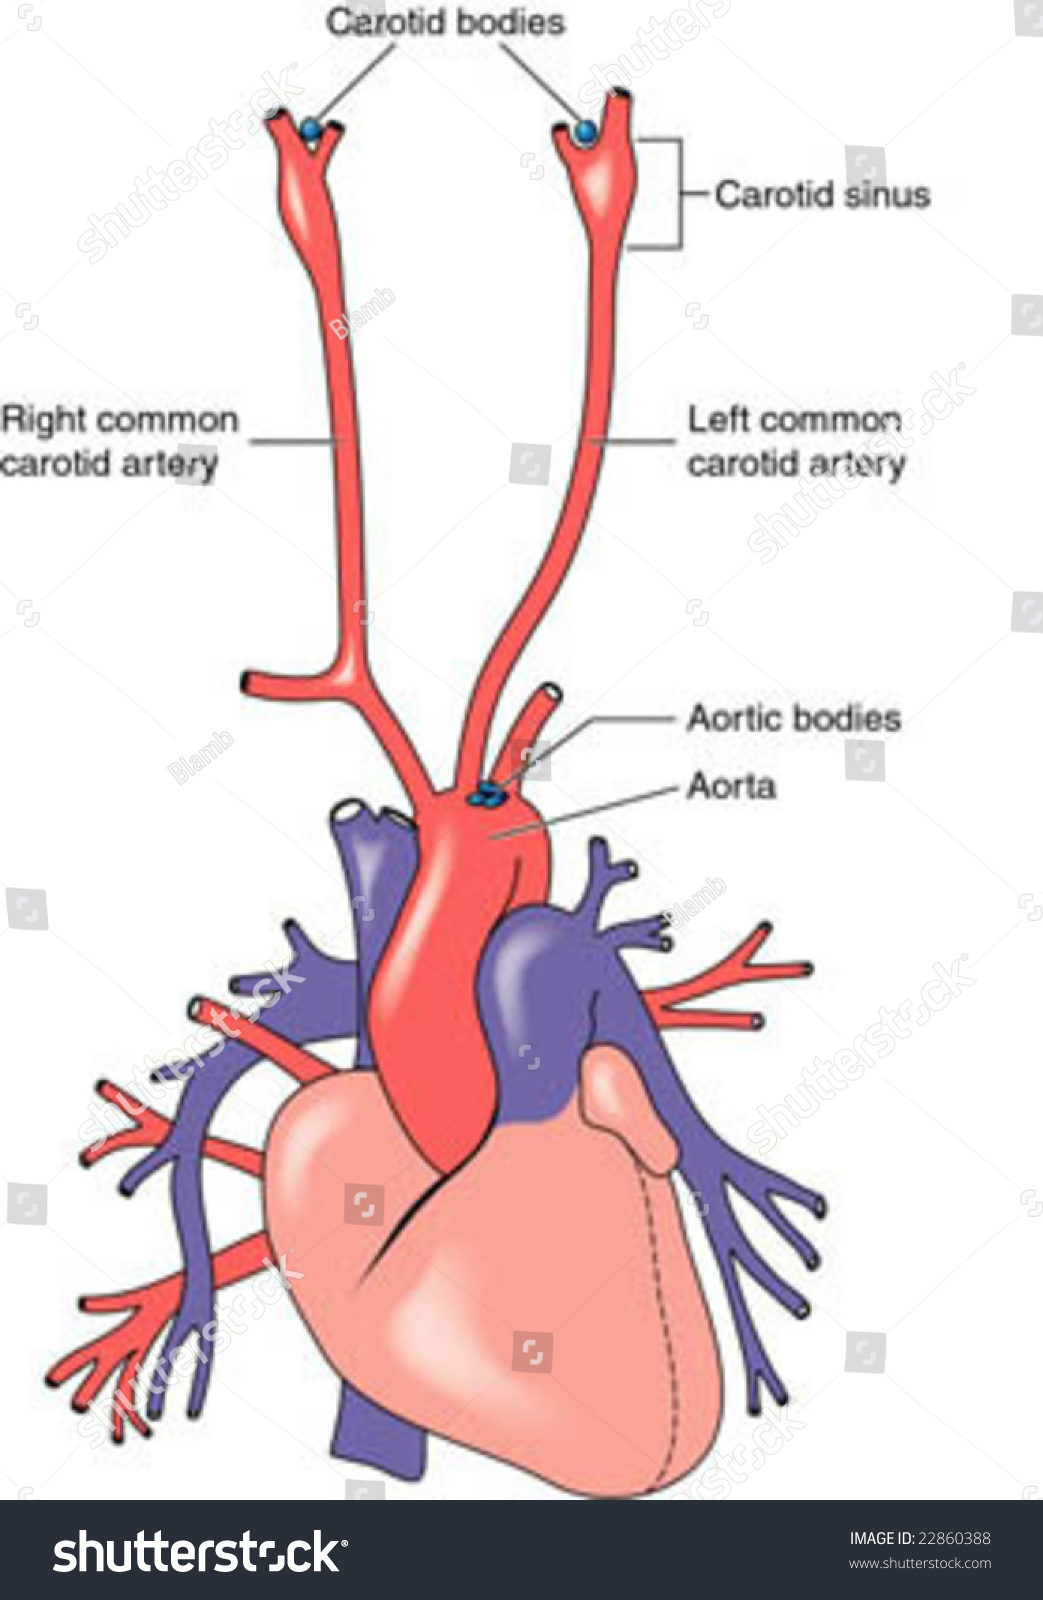 diagram of body veins carotid aortic bodies stock vector 22860388 shutterstock diagram of body muscle